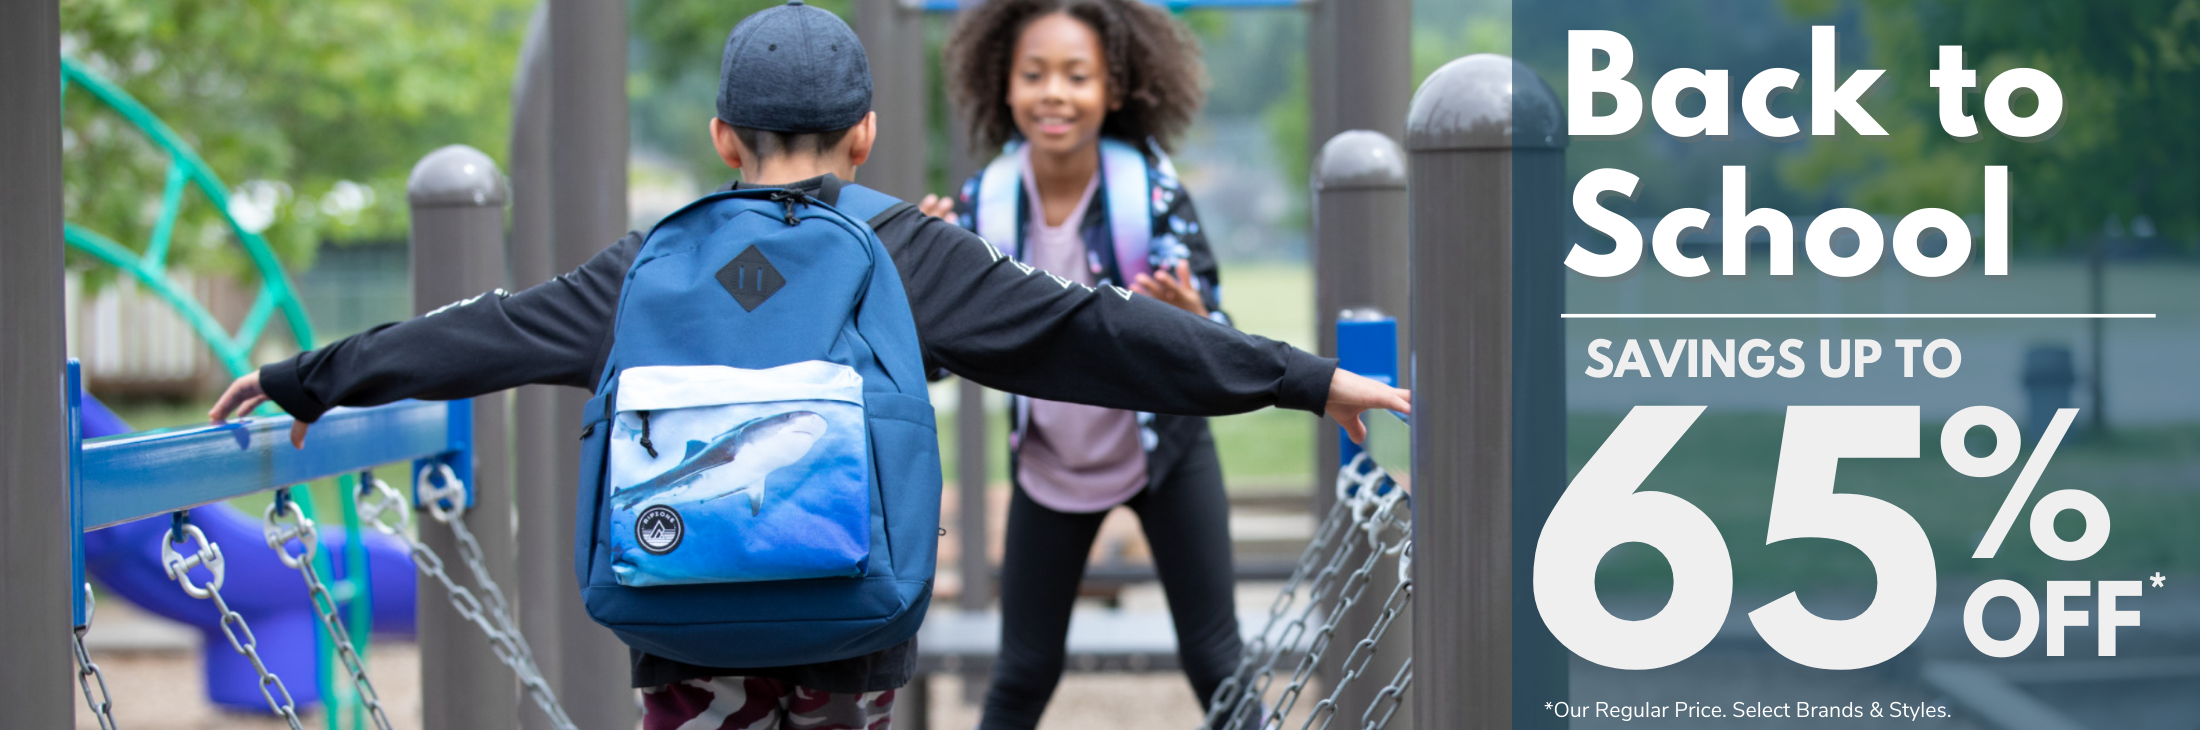 Back To School Sale, find all your favourite back to school gear August 6-31 and save up to 65% off our regular price on select brands and styles.